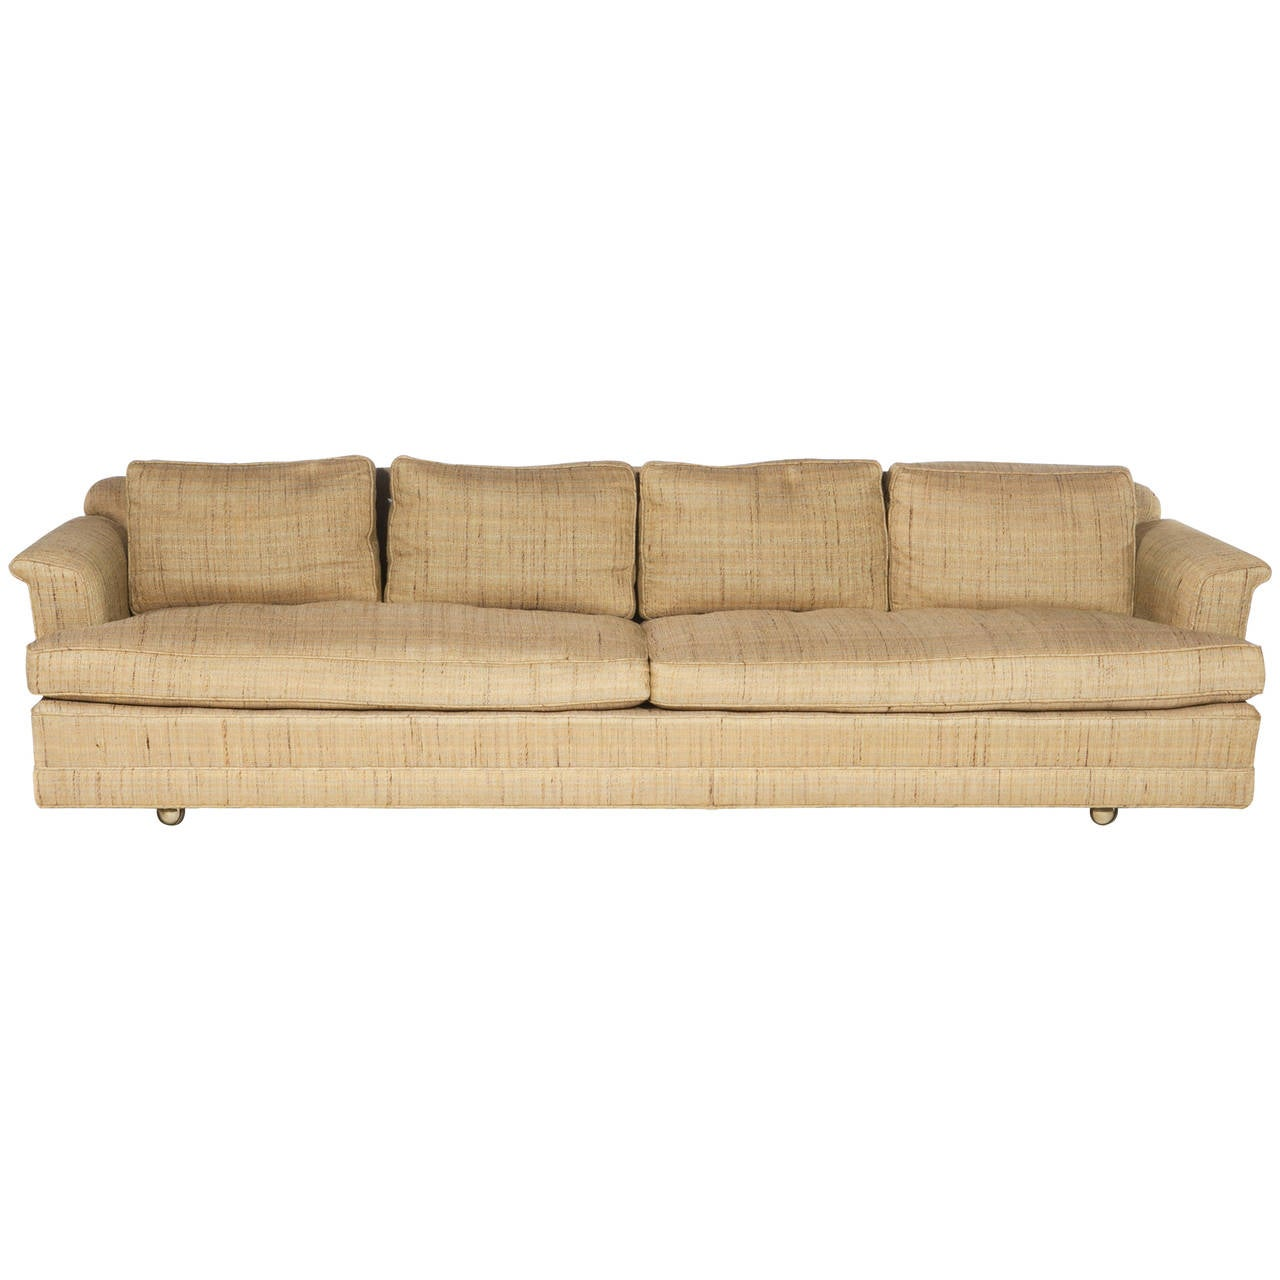 1950s Four-Seat Sofa by Edward Wormley for Dunbar For Sale